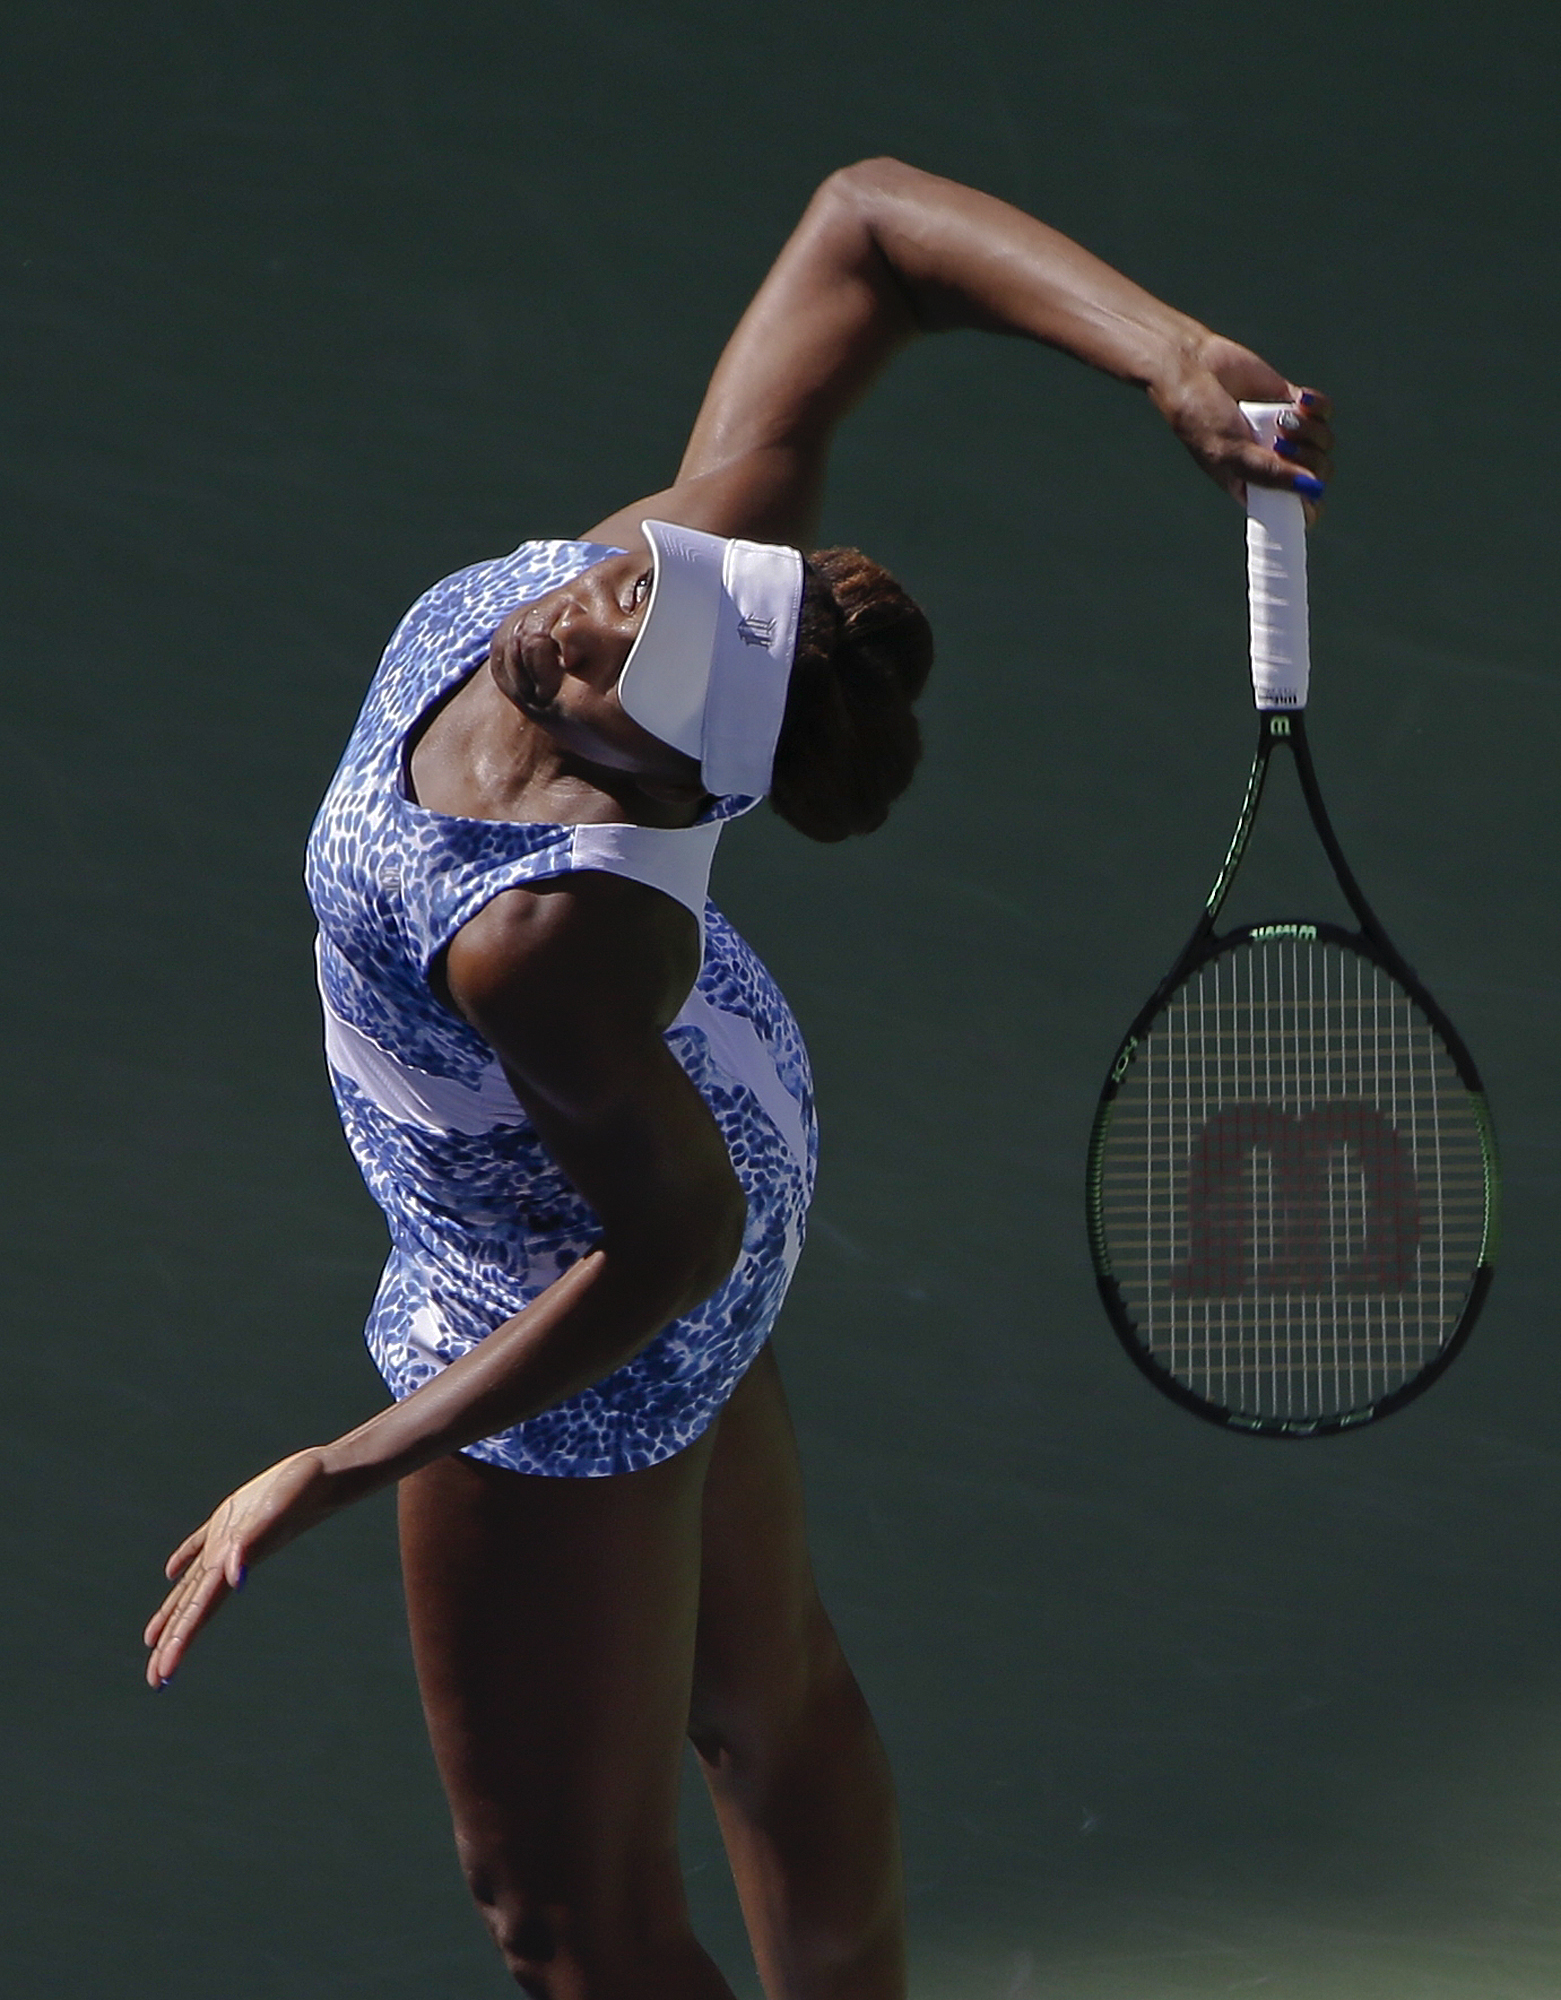 Venus Williams, of the United States, serves to Anett Kontaveit, of Estonia, during the fourth round of the U.S. Open tennis tournament, Sunday, Sept. 6, 2015, in New York. (AP Photo/Matt Rourke)